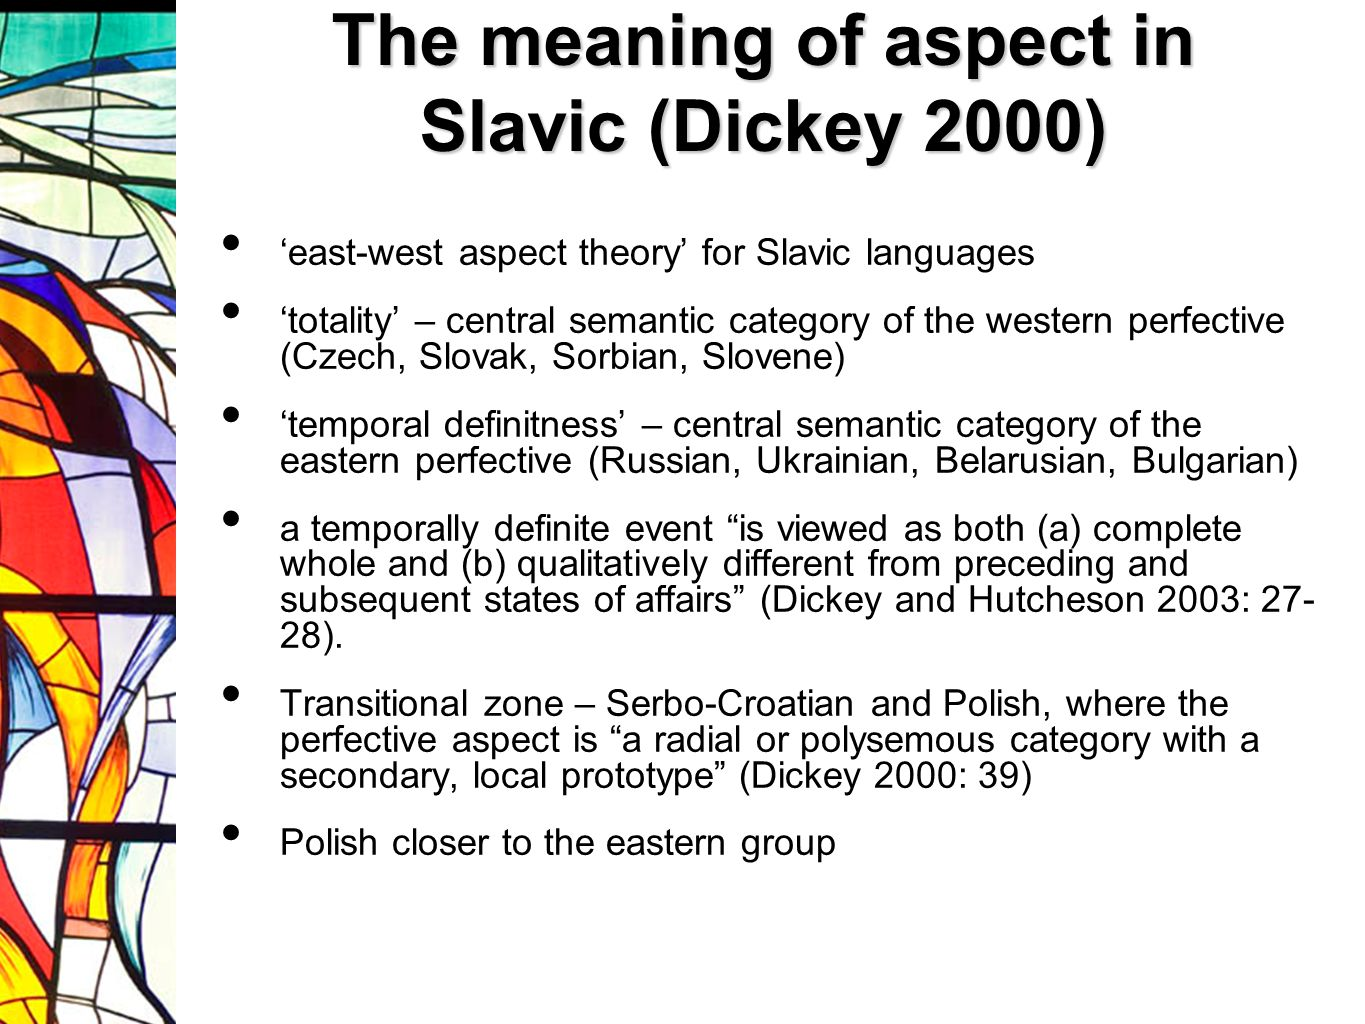 The meaning of aspect in Slavic (Dickey 2000) east-west aspect theory for Slavic languages totality – central semantic category of the western perfective (Czech, Slovak, Sorbian, Slovene) temporal definitness – central semantic category of the eastern perfective (Russian, Ukrainian, Belarusian, Bulgarian) a temporally definite event is viewed as both (a) complete whole and (b) qualitatively different from preceding and subsequent states of affairs (Dickey and Hutcheson 2003: 27- 28).